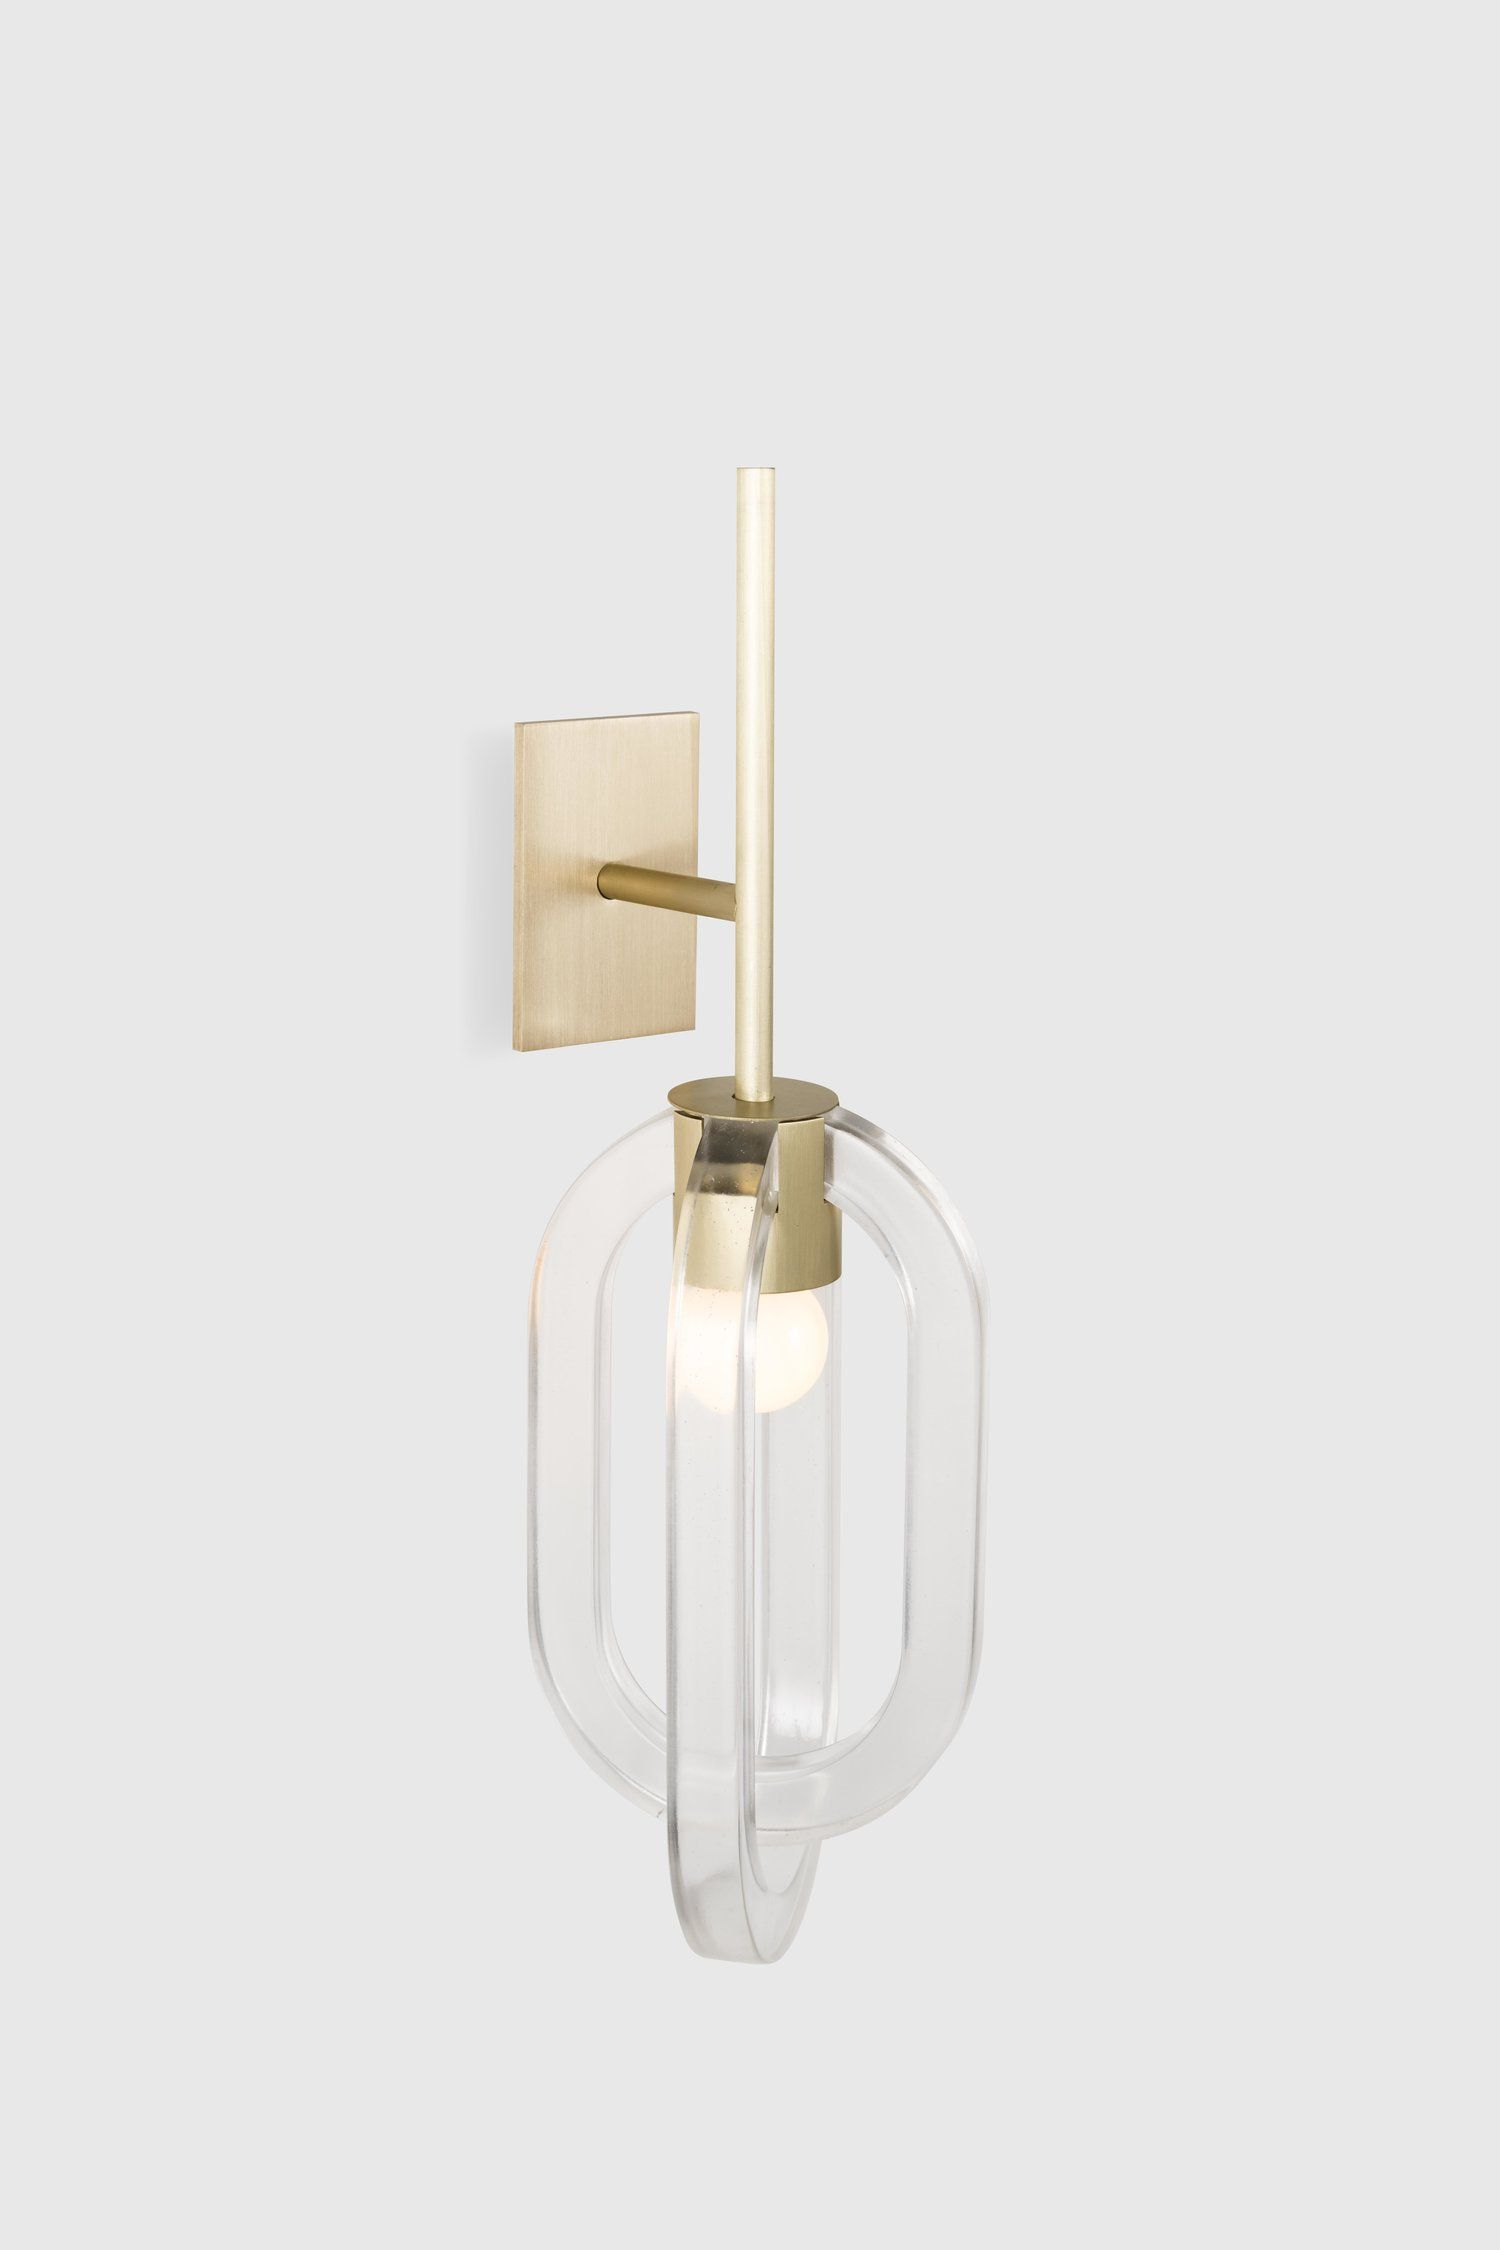 Cirrus Sconce With Images Sconces Brass Lighting Architectural Lighting Design